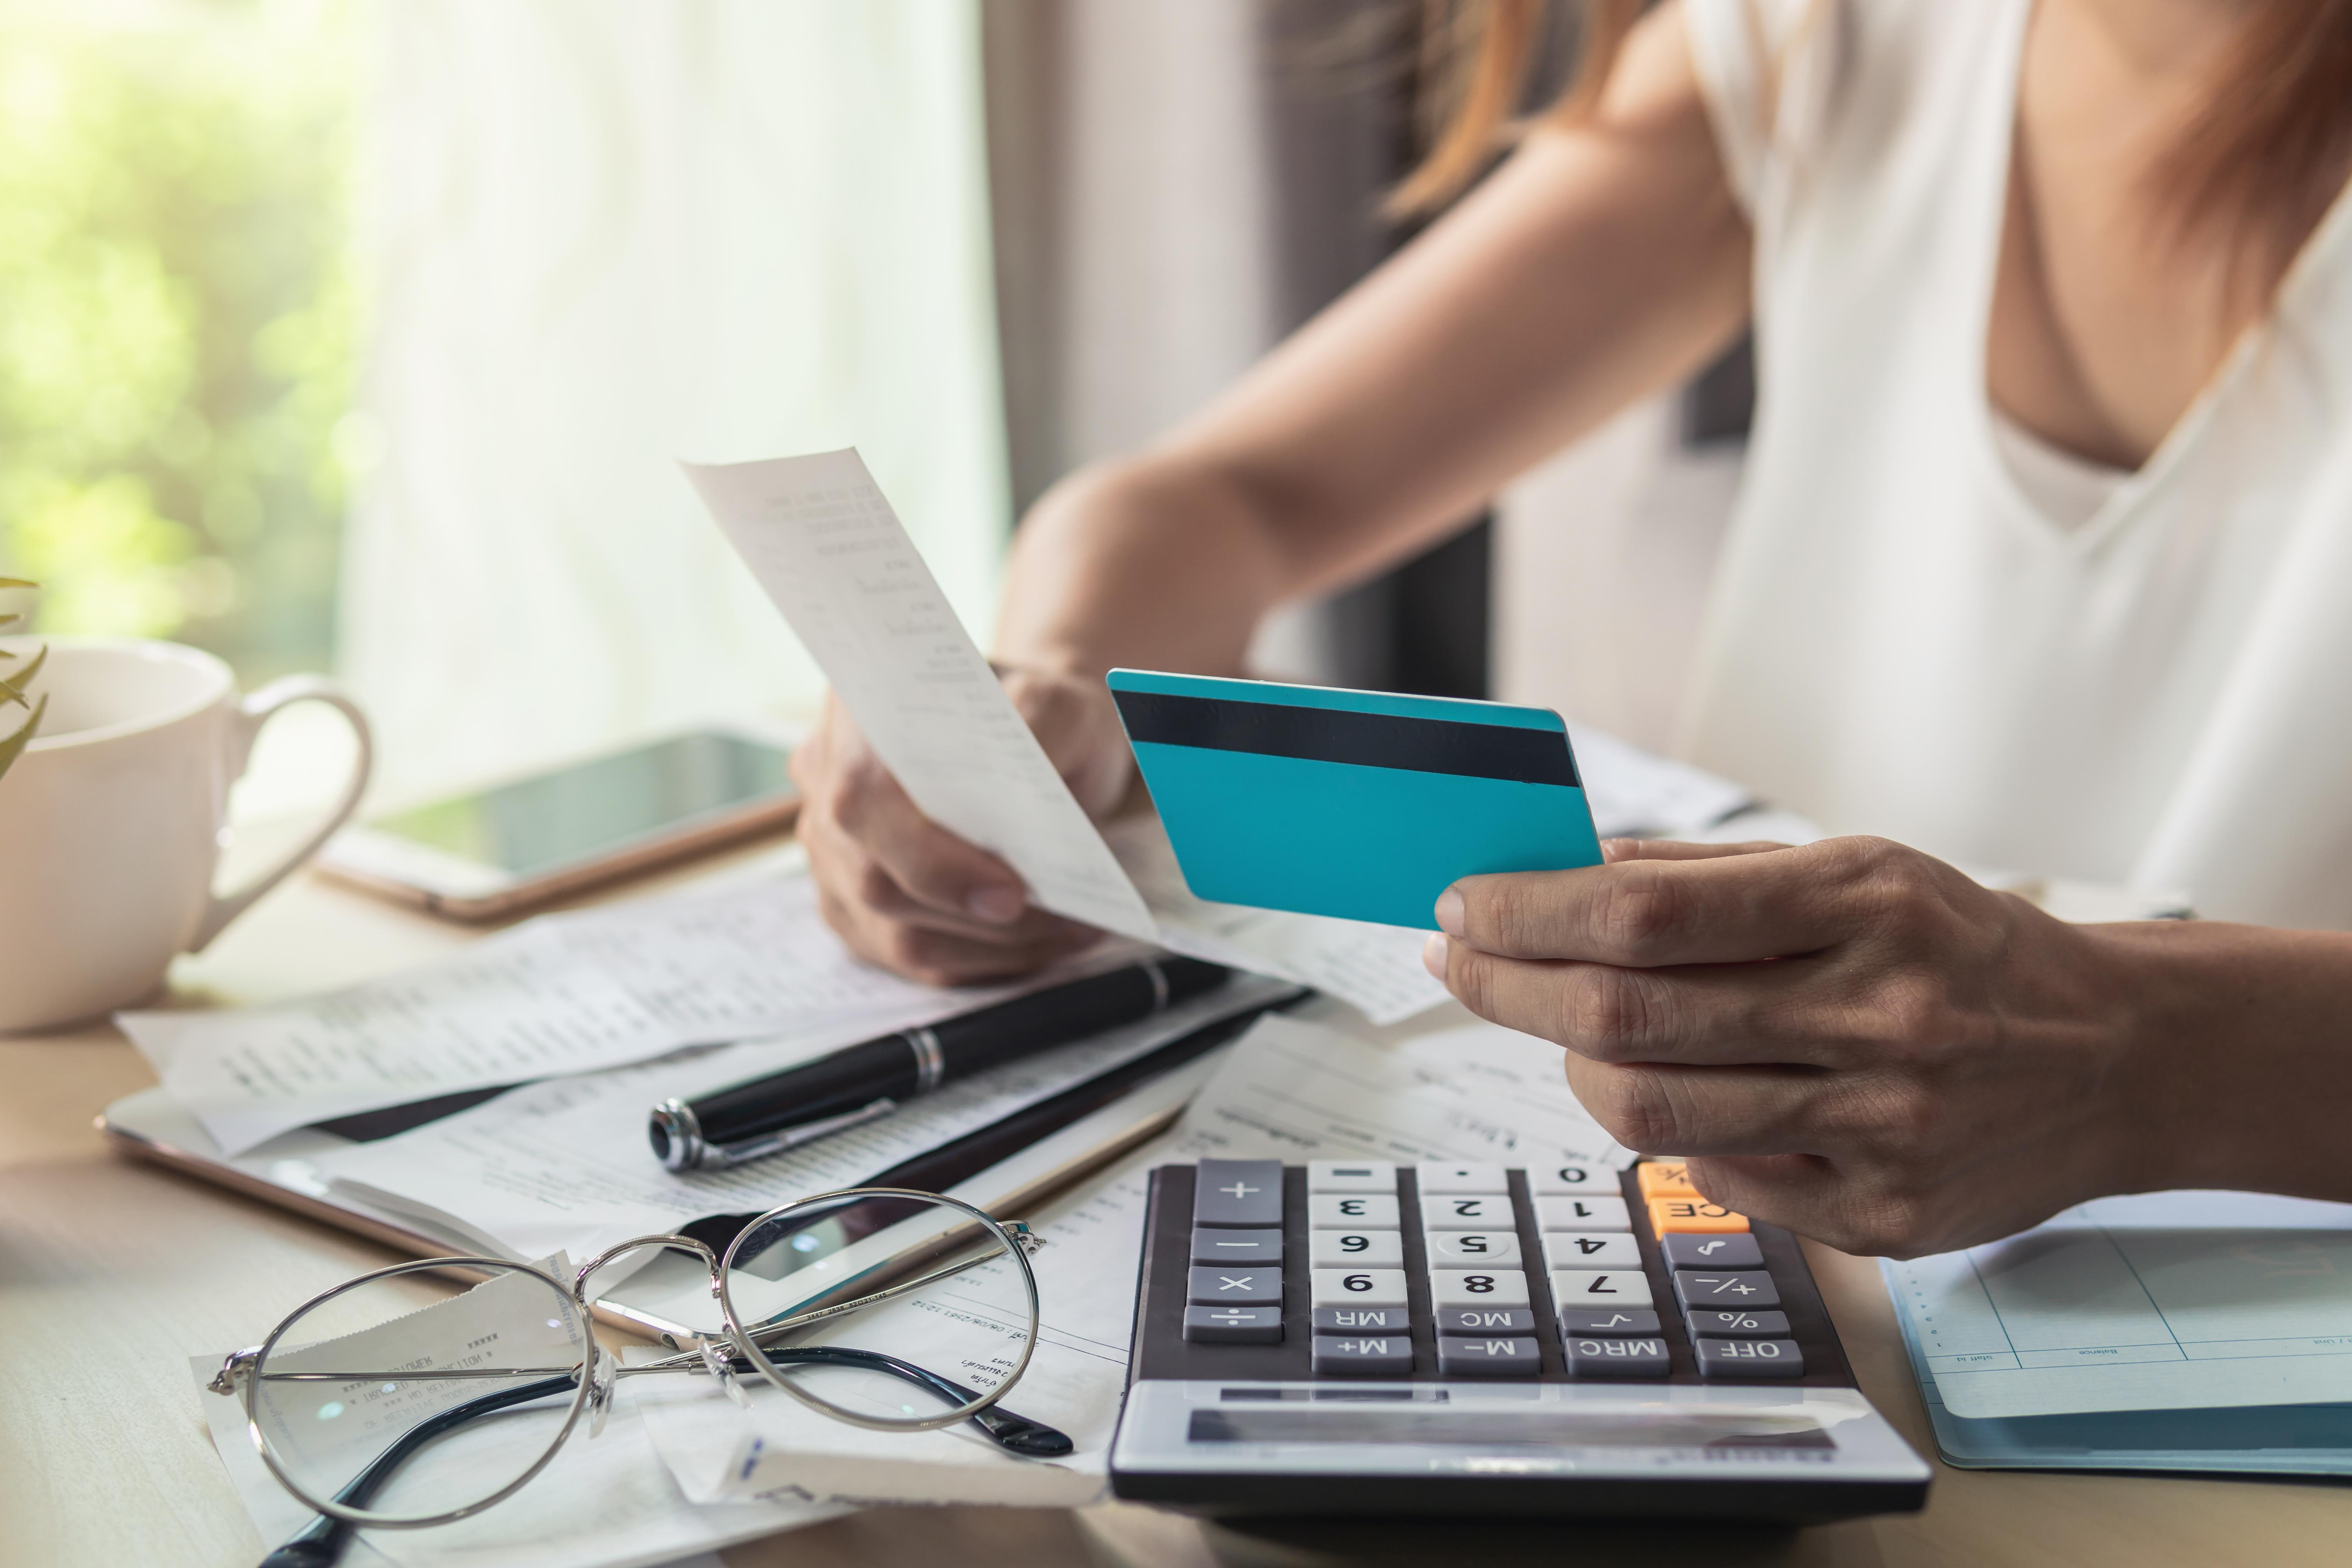 These tips will help you get your debt under control